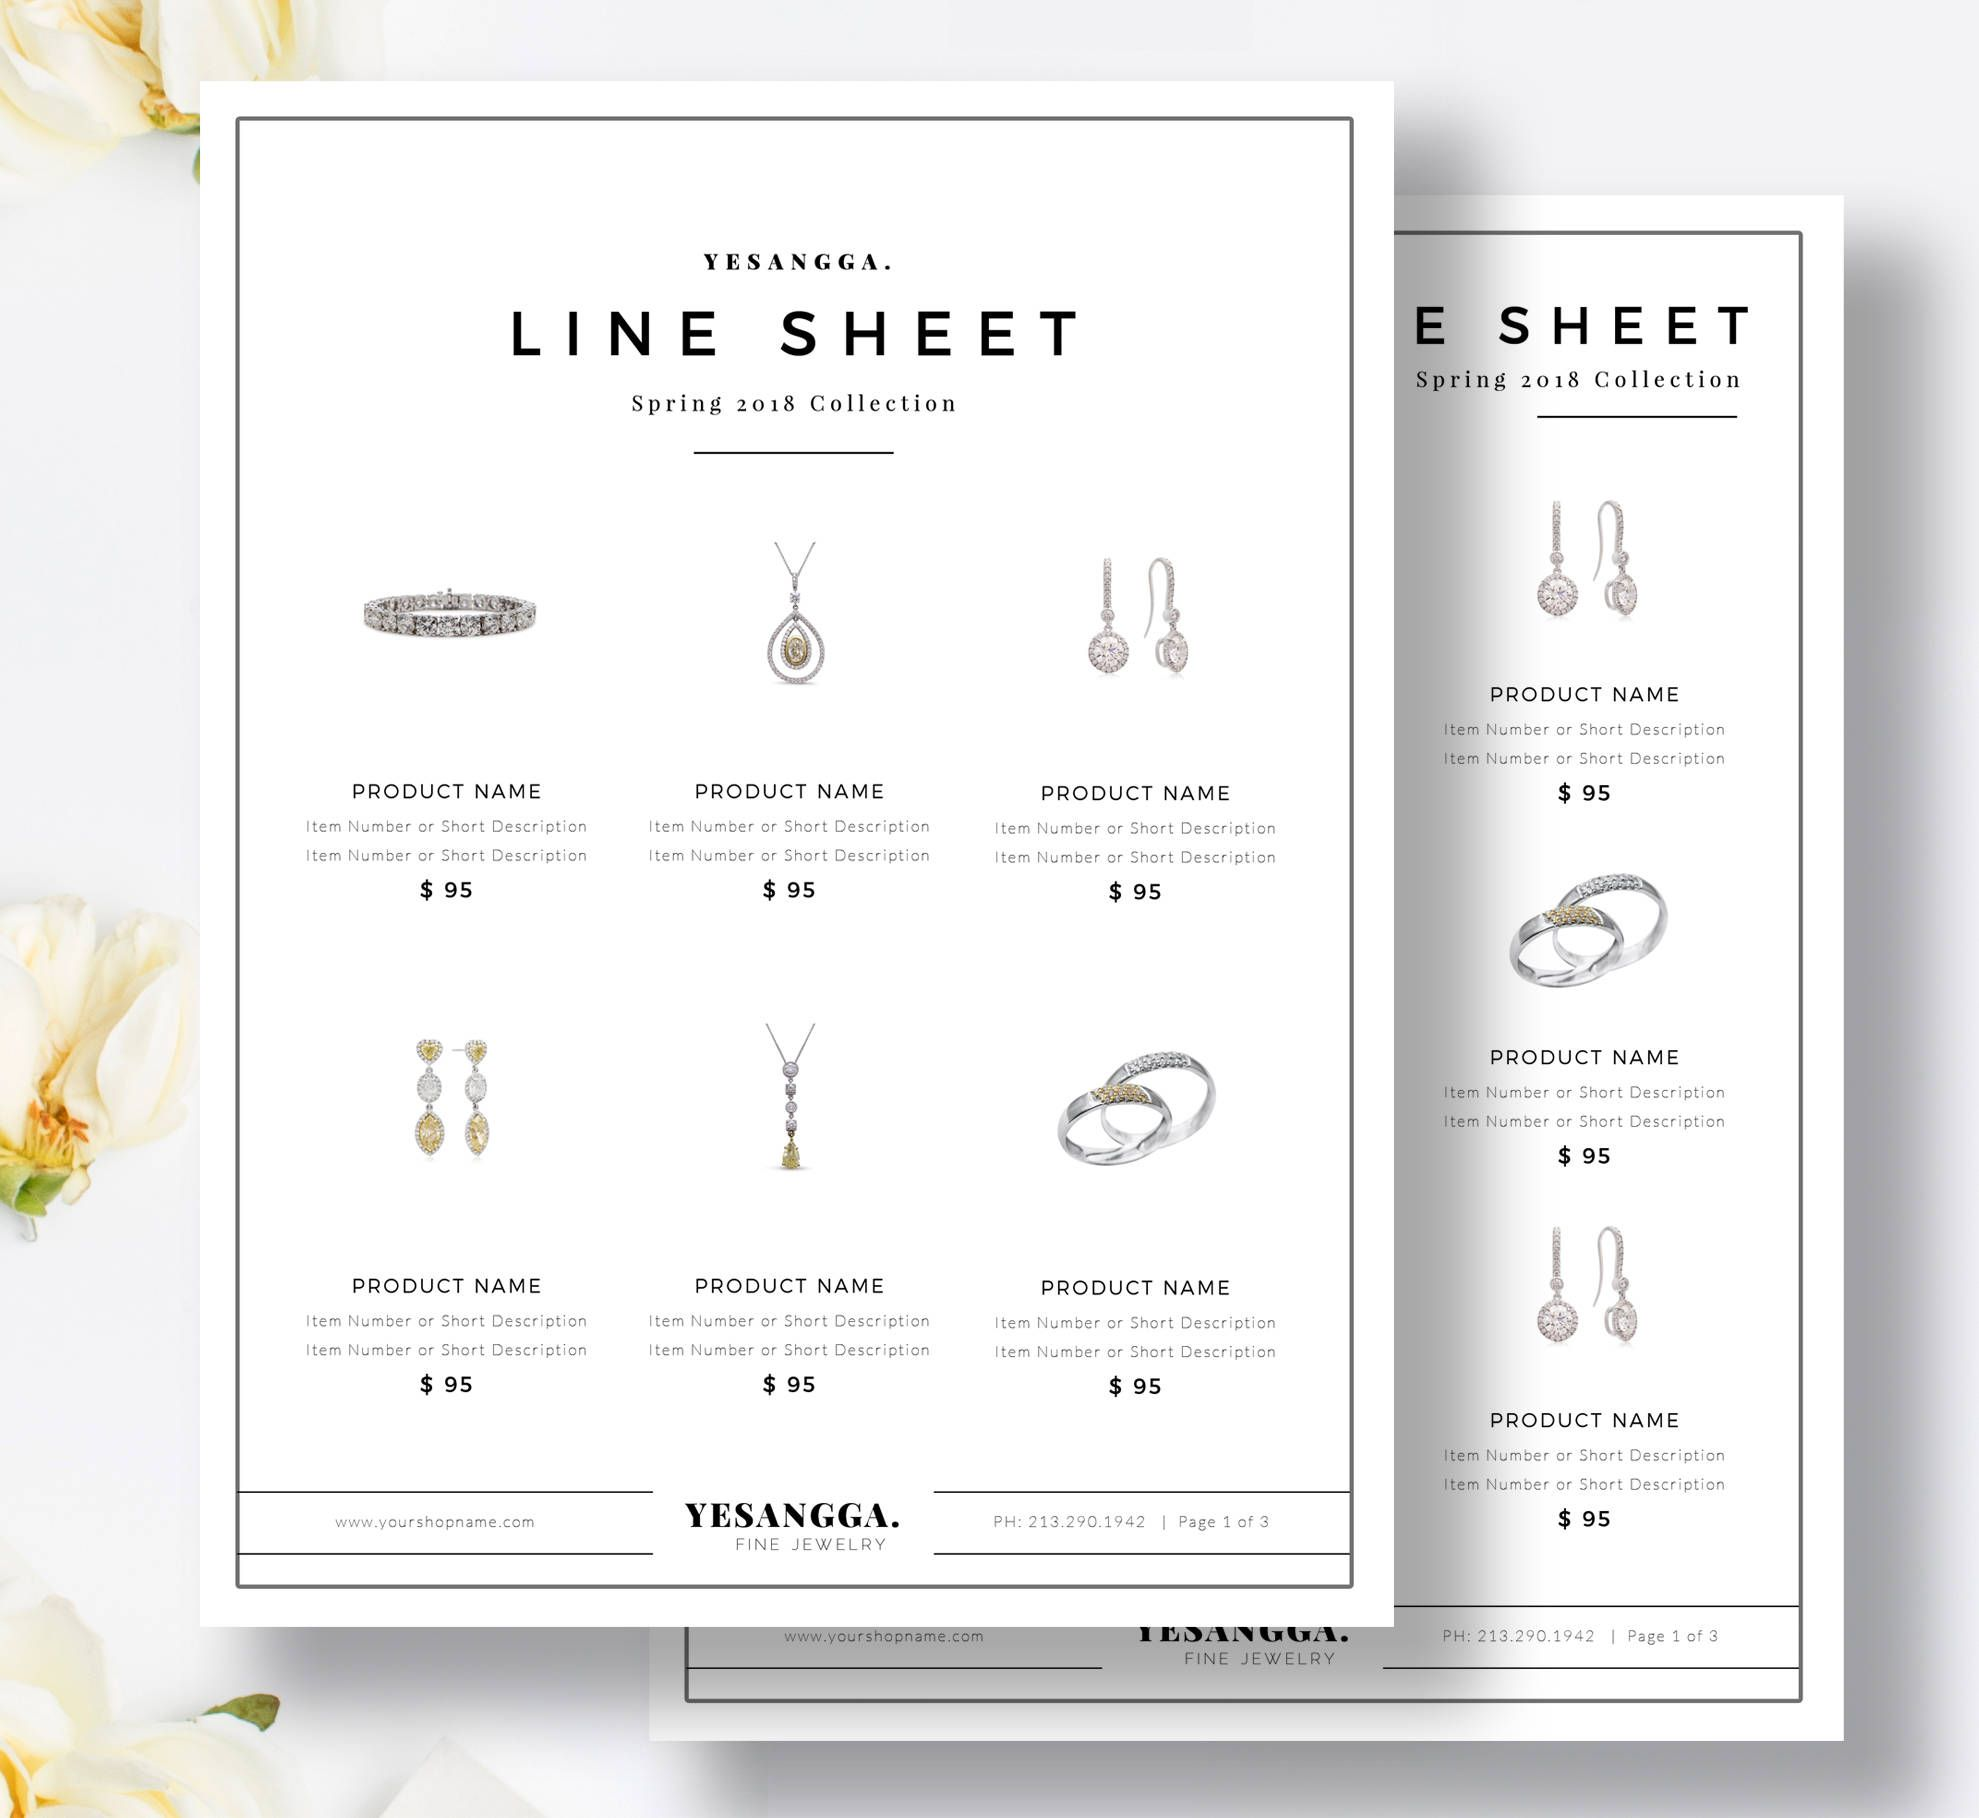 006 Unusual Wholesale Line Sheet Template Sample  Fashion Free ExcelFull